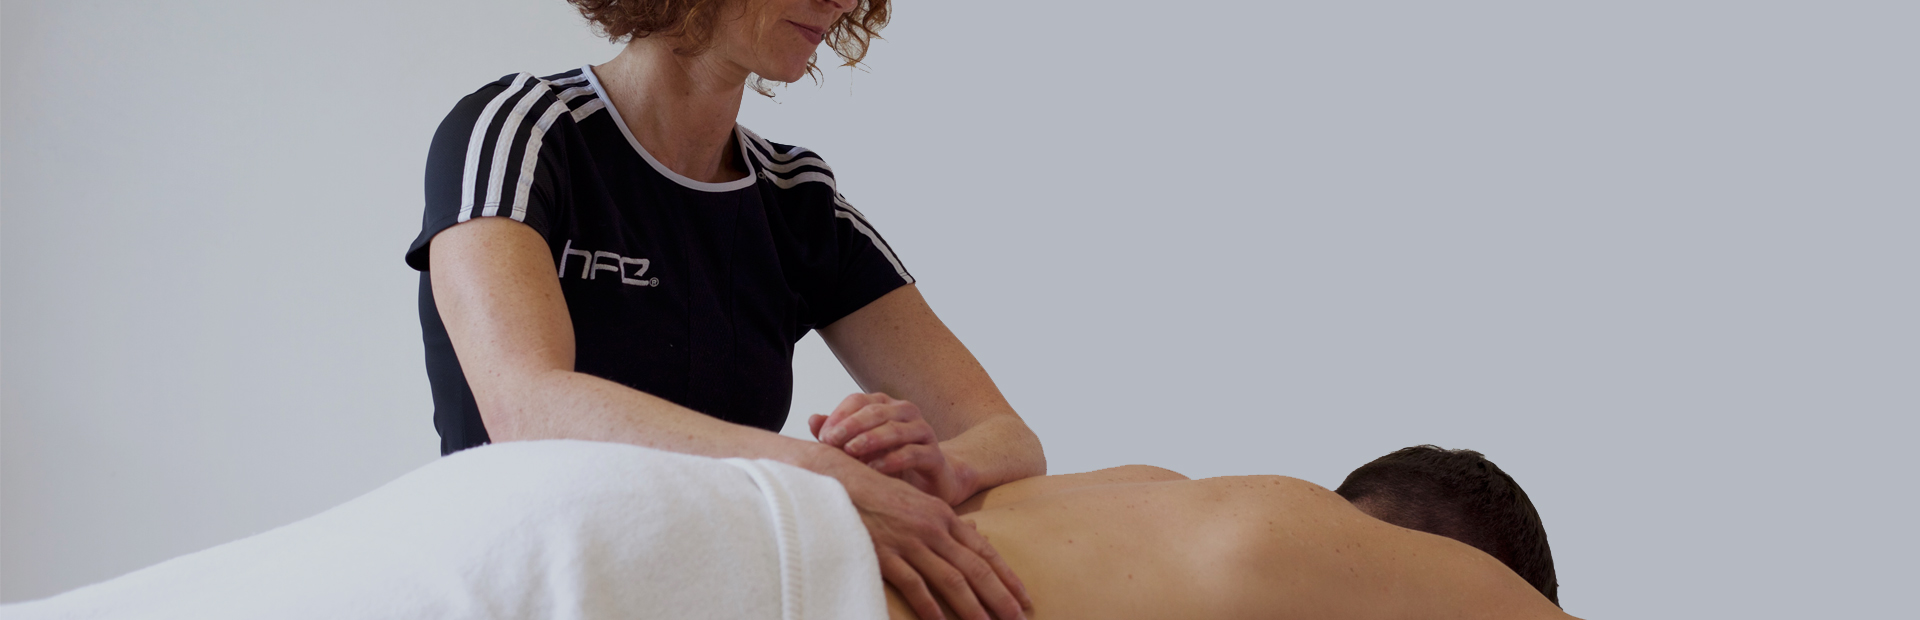 Qualified massage therapist working with a client on HFE's sport massage courses